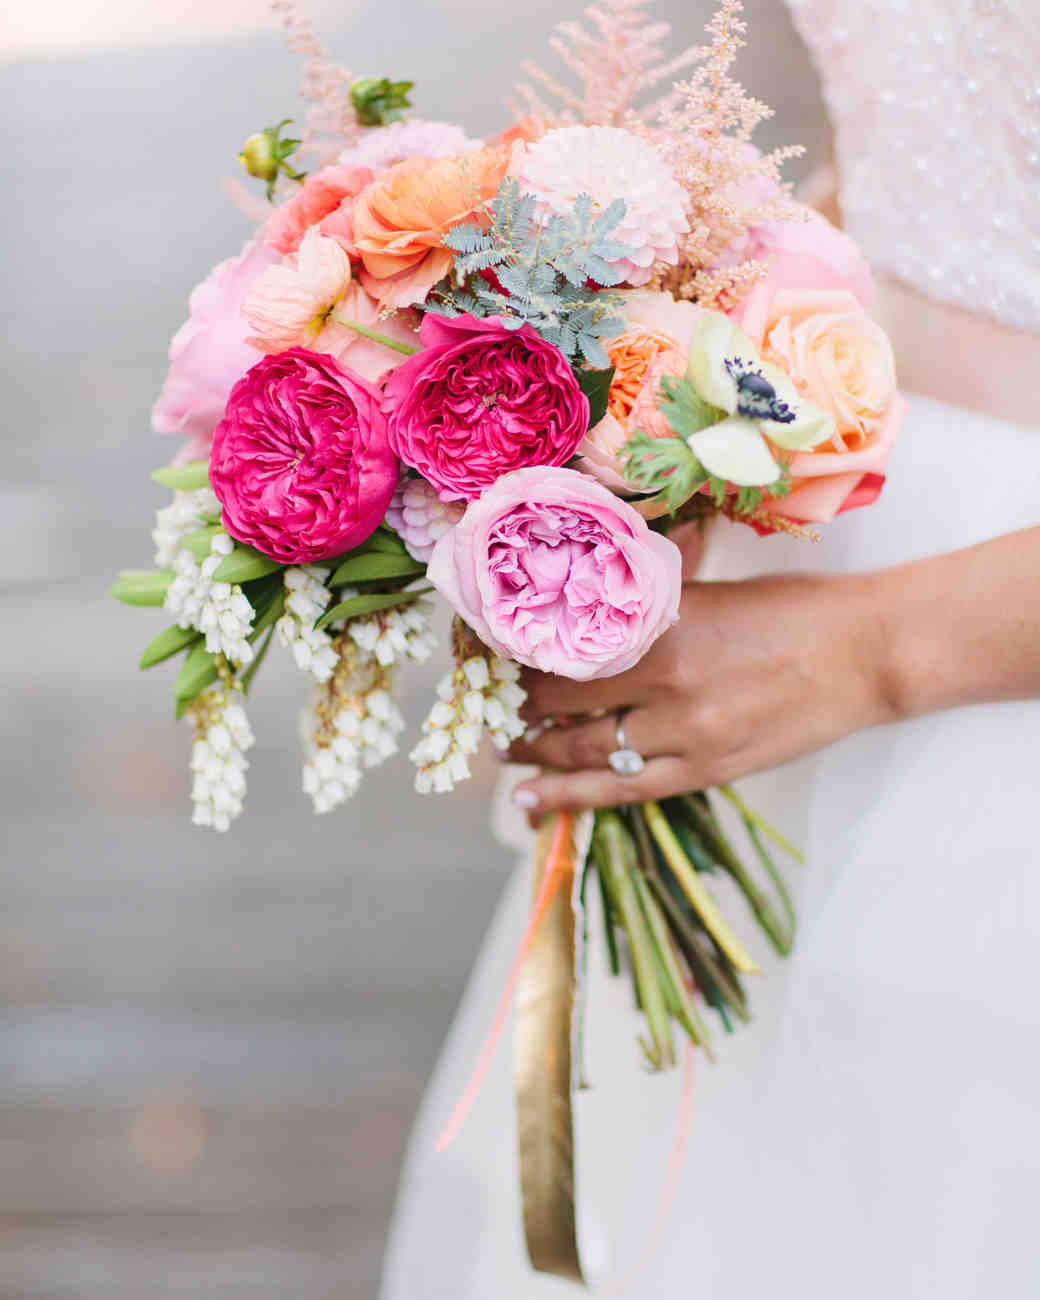 11 nail polish colors inspired by our favorite wedding flowers 11 nail polish colors inspired by our favorite wedding flowers martha stewart weddings izmirmasajfo